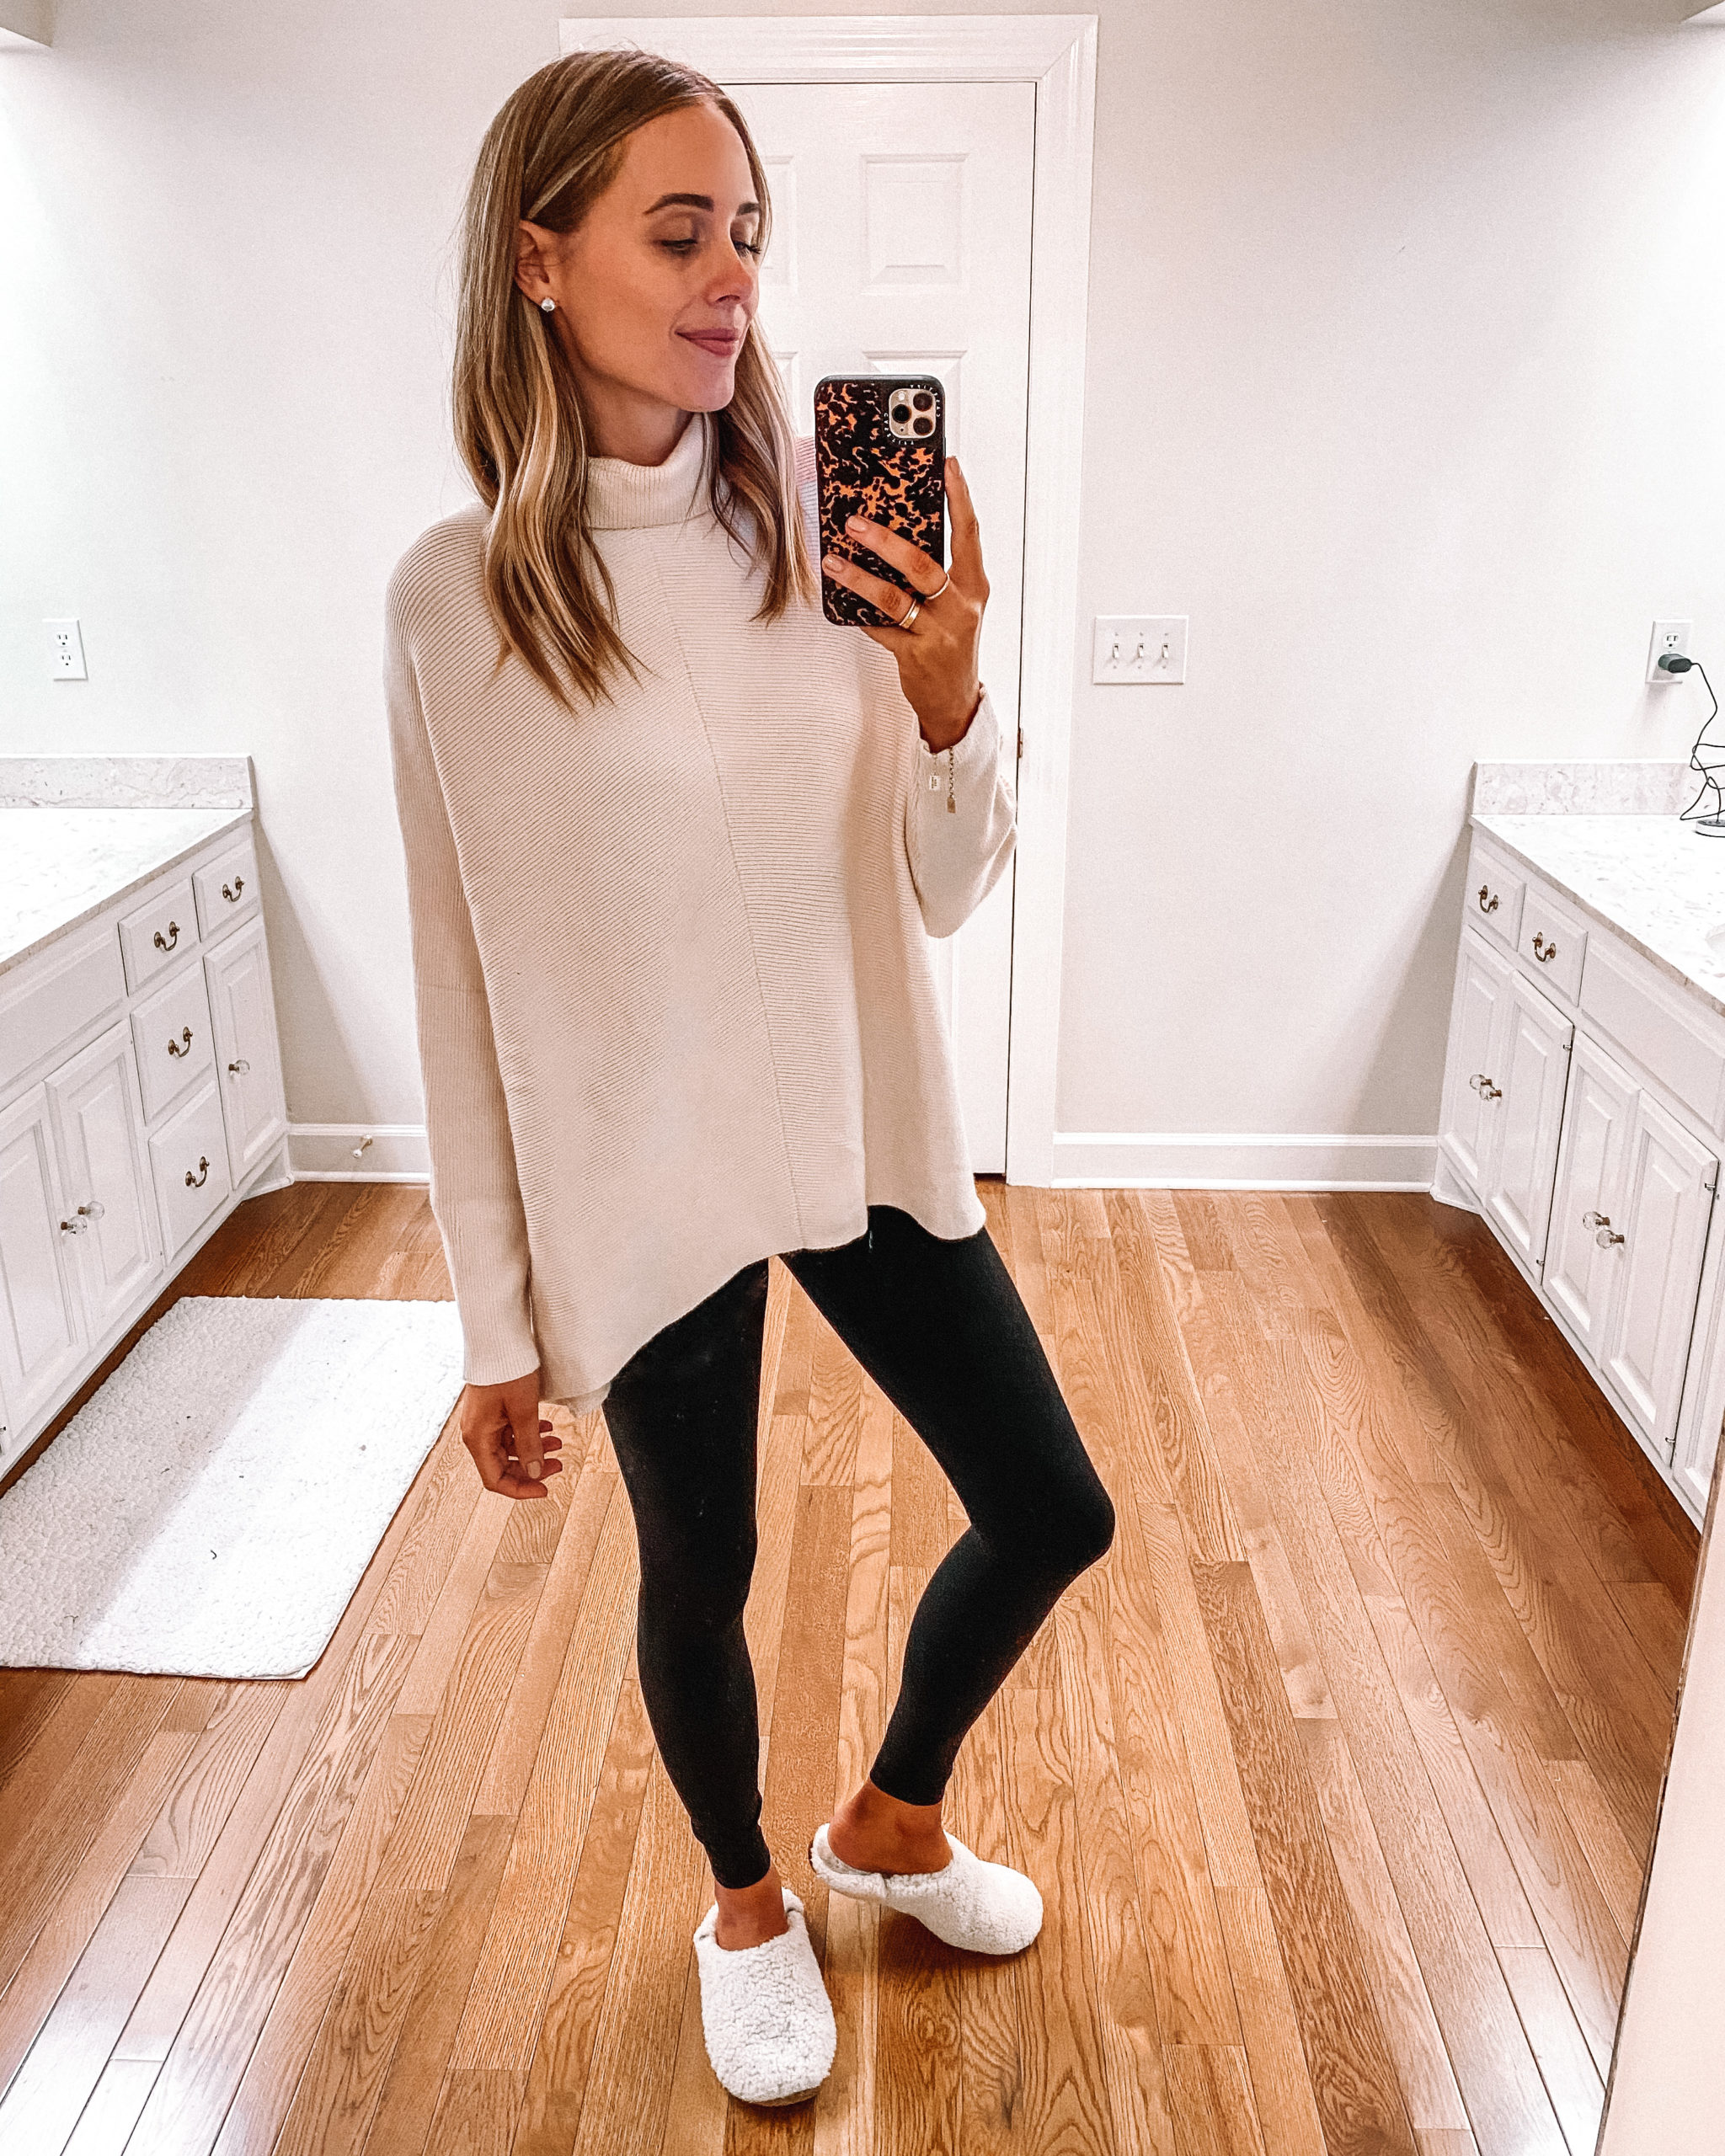 Fashion Jackson Wearing Amazon Fashion White Tunic Sweater Black Leggings